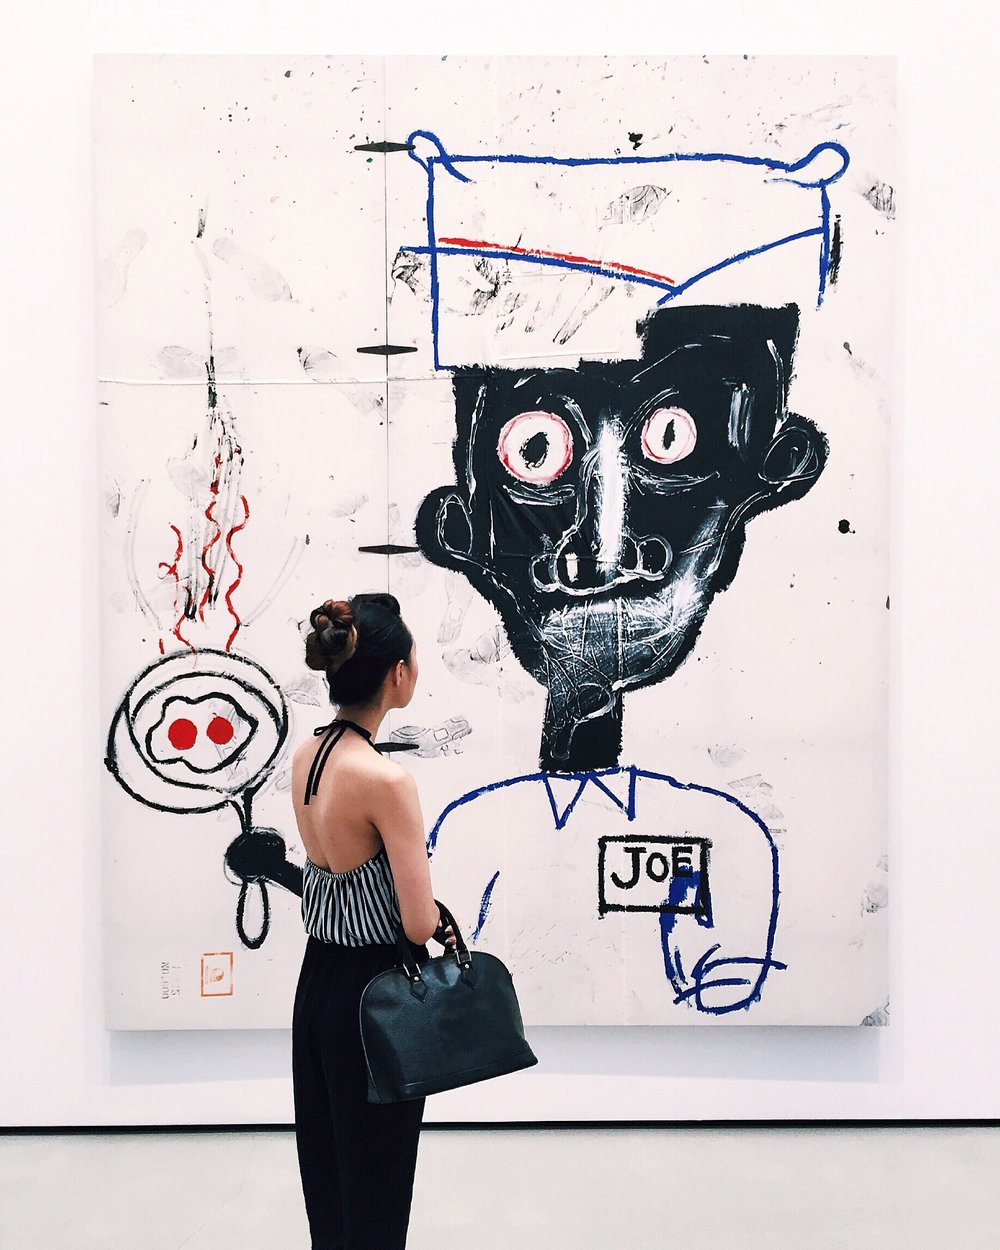 Jean-Michel Basquiat Eyes and Eggs 1983 Acrylic, oil stick and paper collage on cotton drop cloth with metal hinges